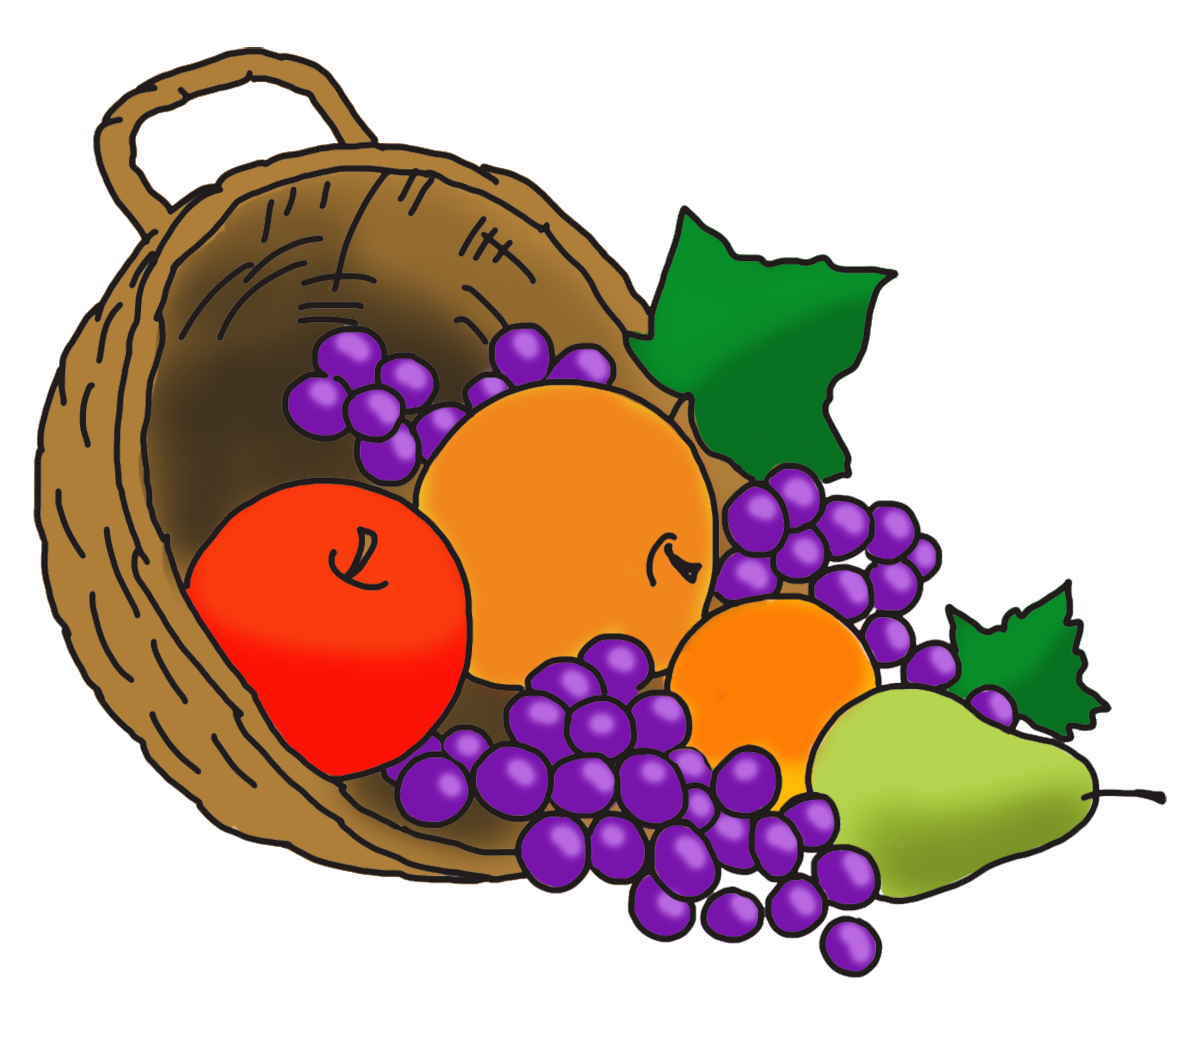 Grapes clipart autumn fruit. Happy thanksgiving cornucopia with